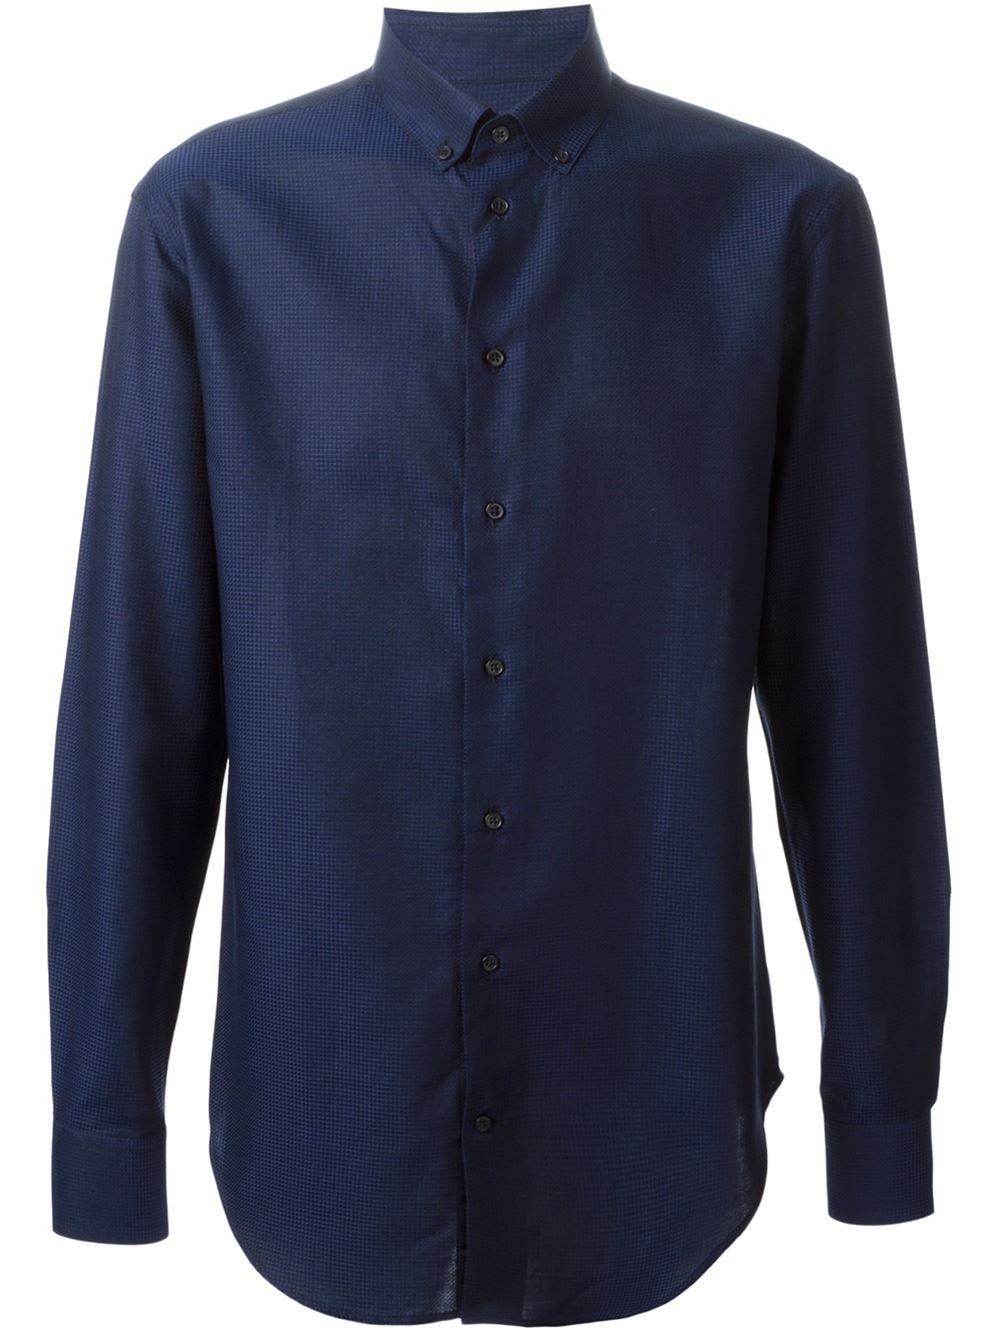 Armani Button Down Shirt In Blue For Men Lyst